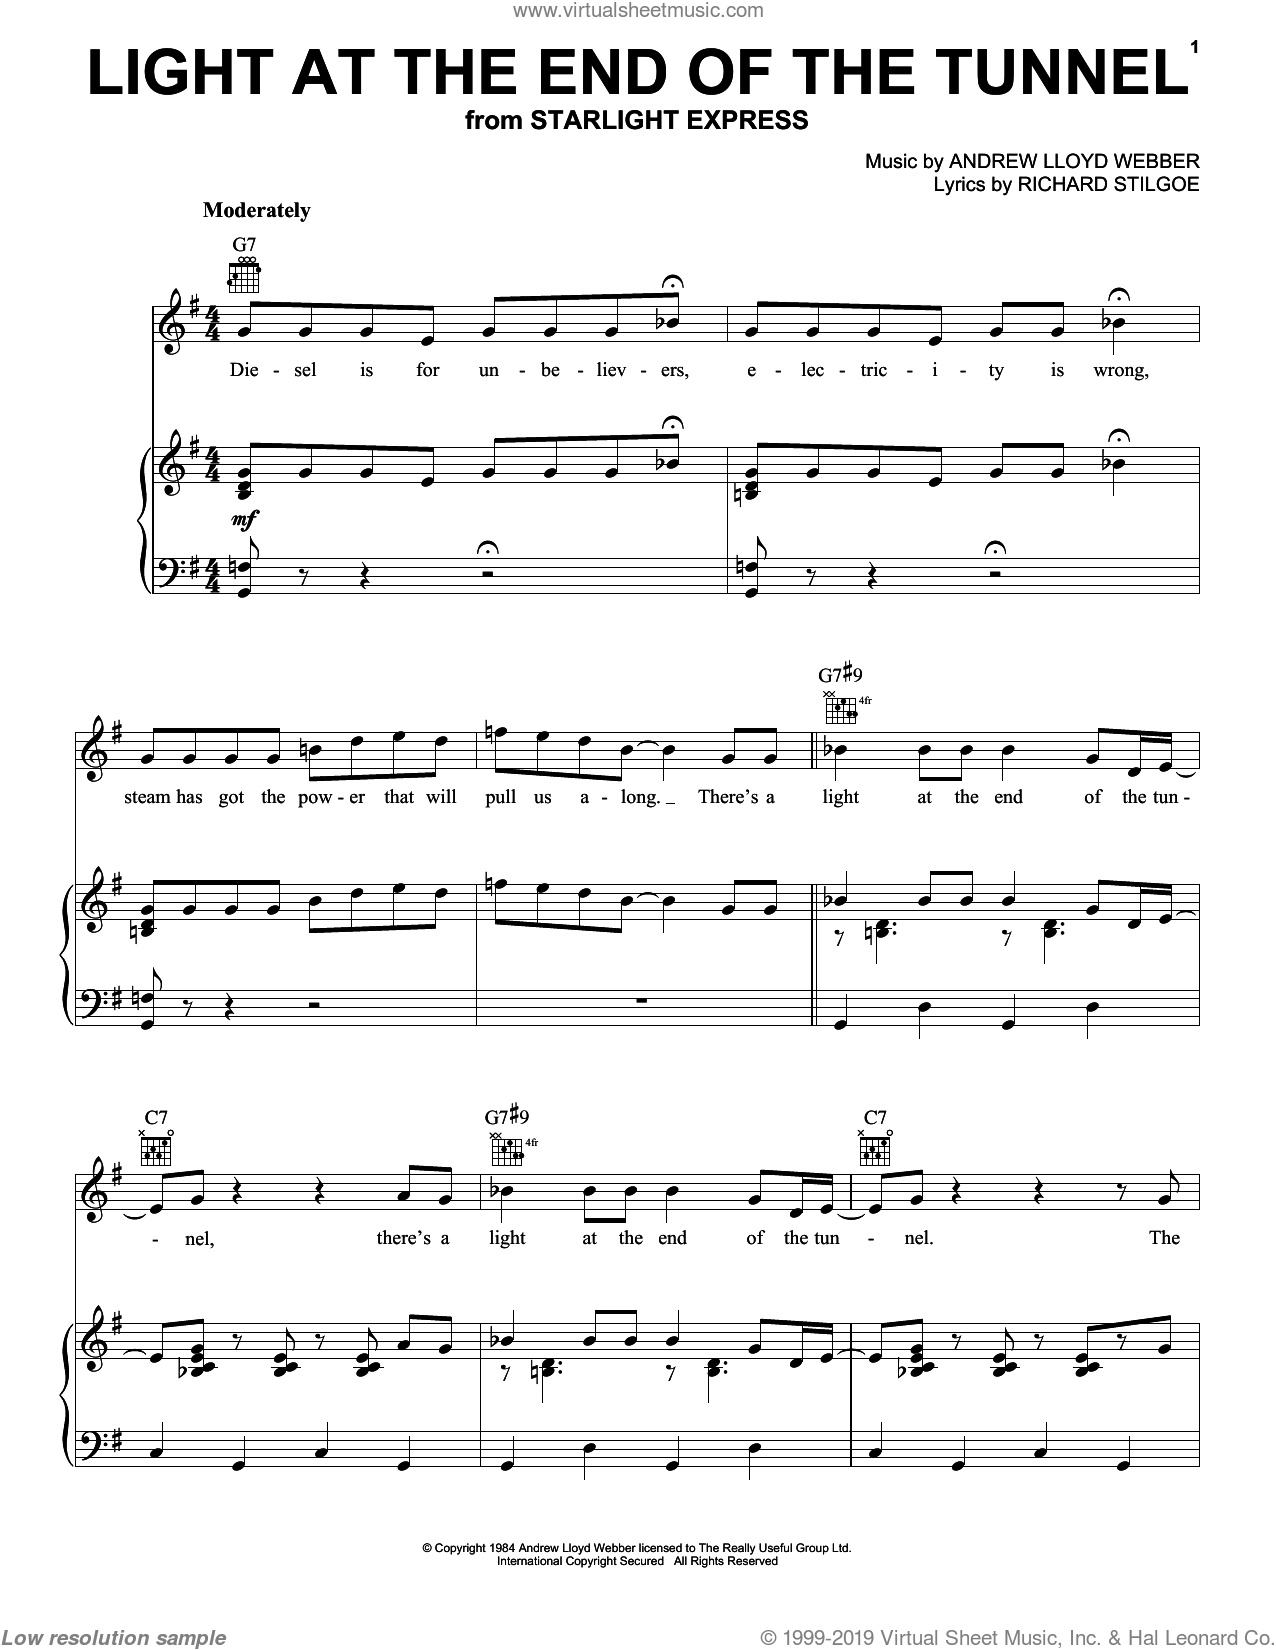 Light At The End Of The Tunnel sheet music for voice, piano or guitar by Andrew Lloyd Webber and Richard Stilgoe, intermediate skill level